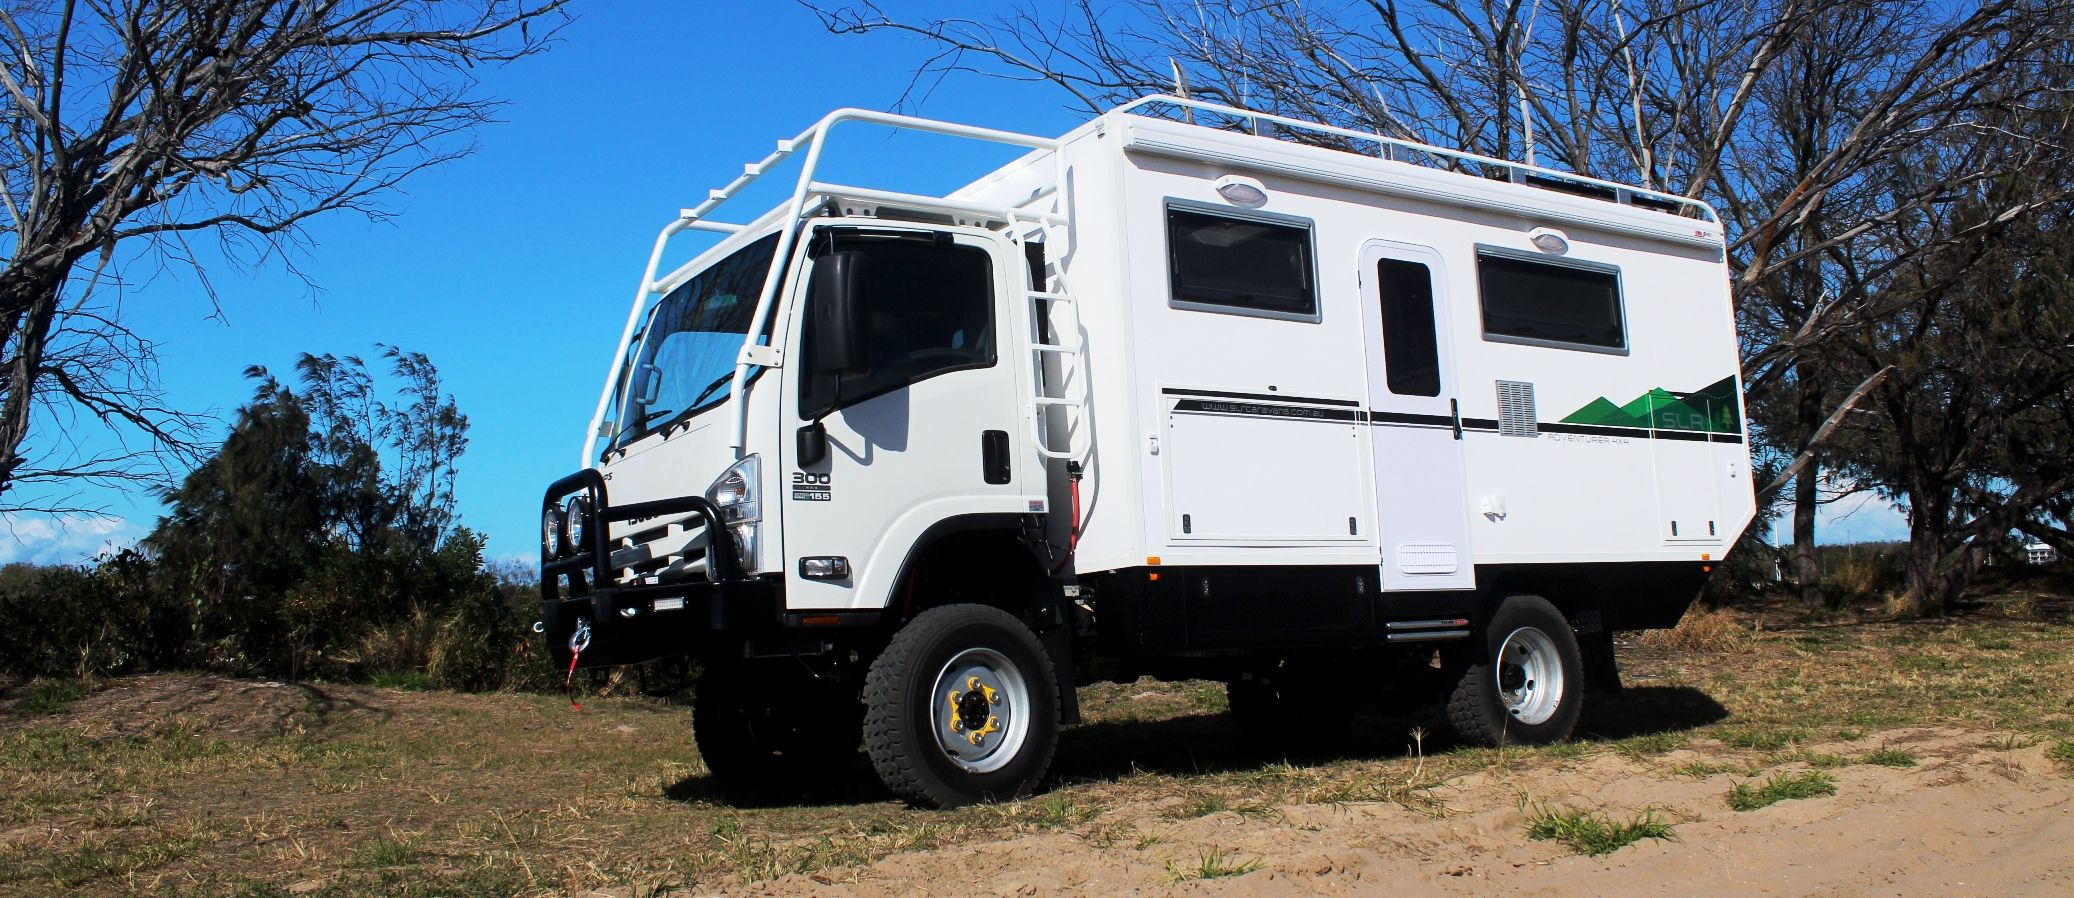 Slr Adventurer 4x4 Expedition Vehicle 4x4 Motorhome Isuzu Nps300 4wd Campers Pinterest